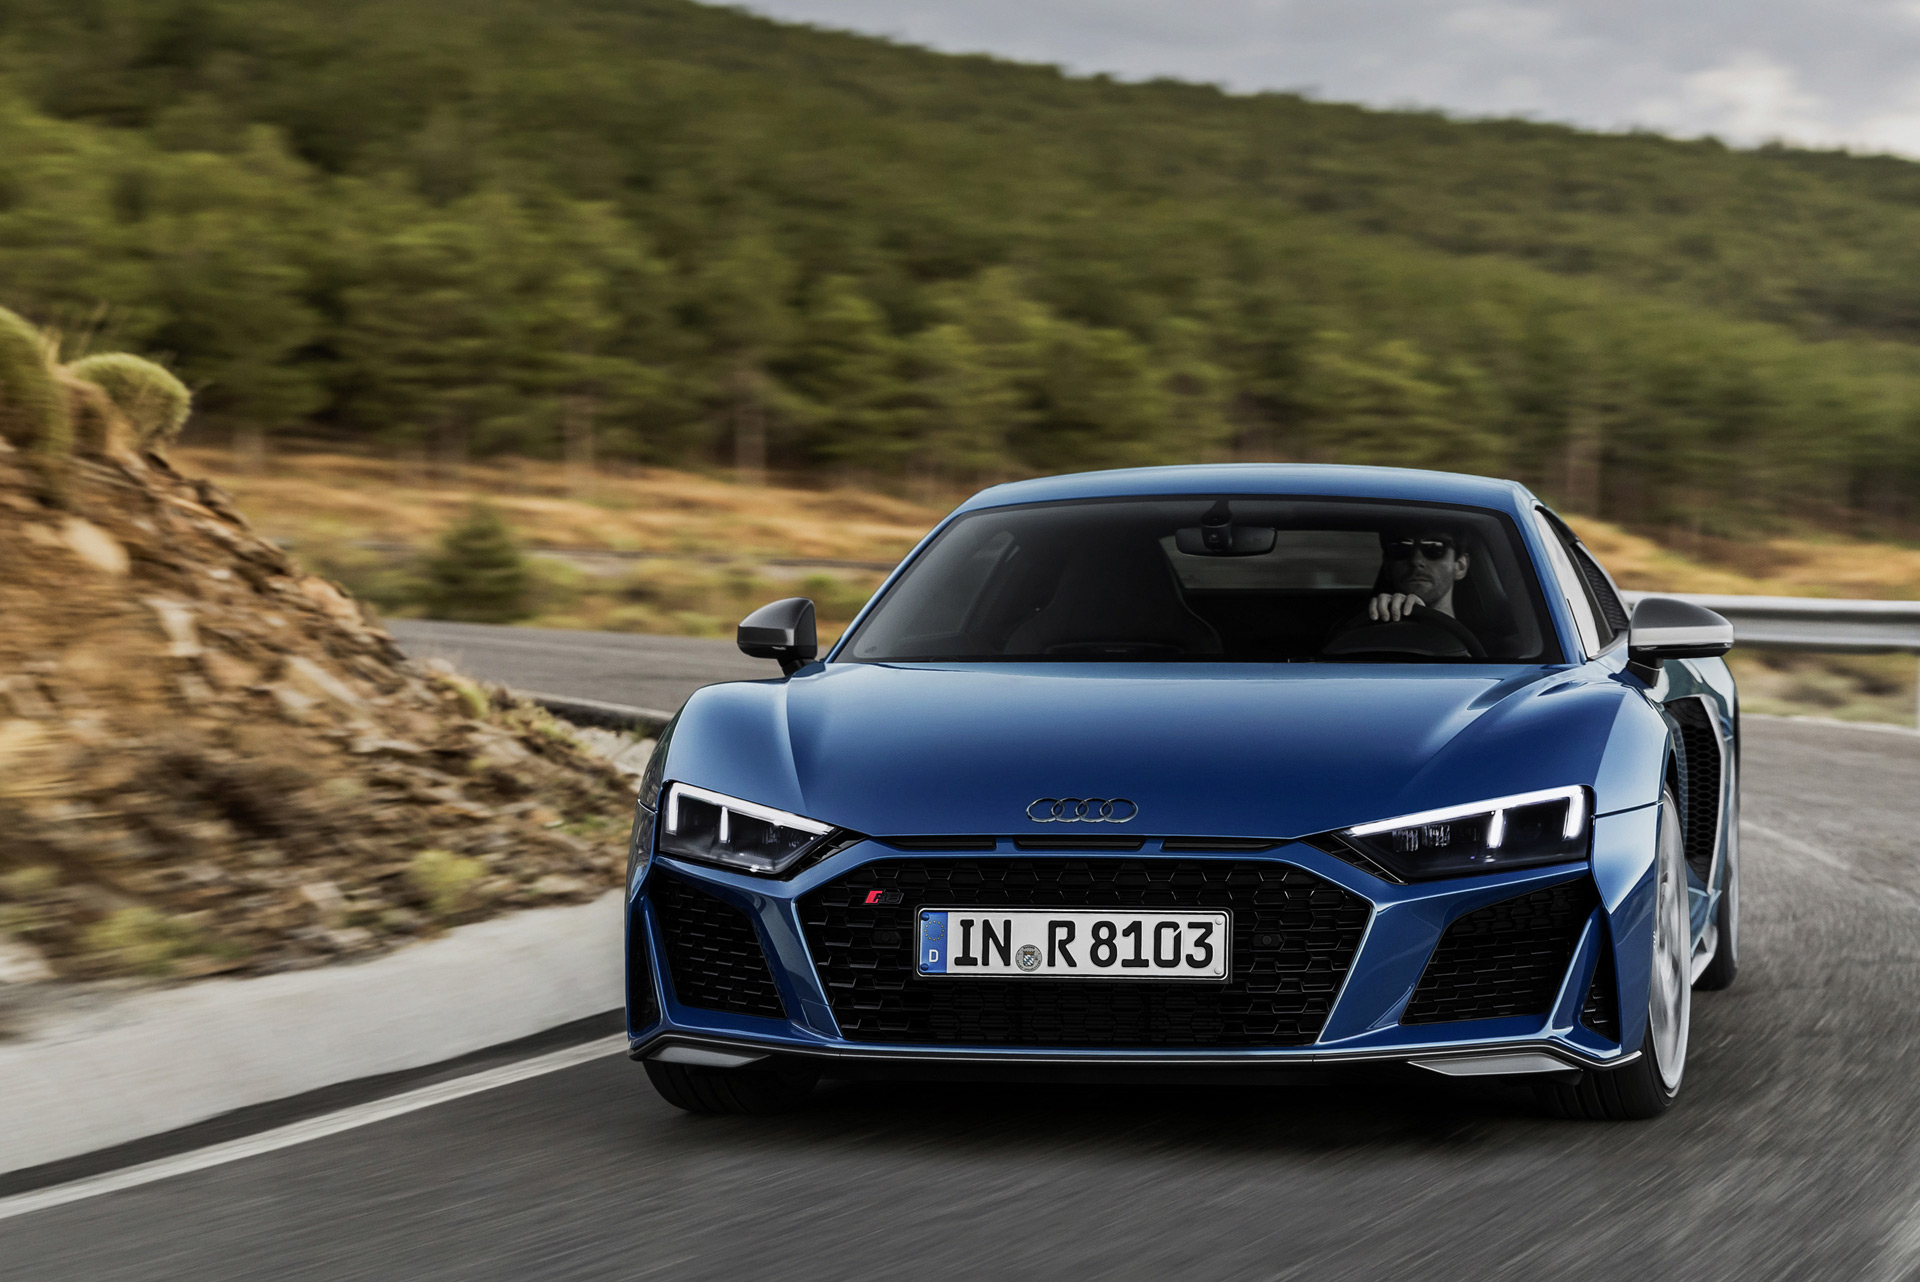 2019 Audi R8 2019 Cadillac Cts V Mclaren Speedtail This Weeks